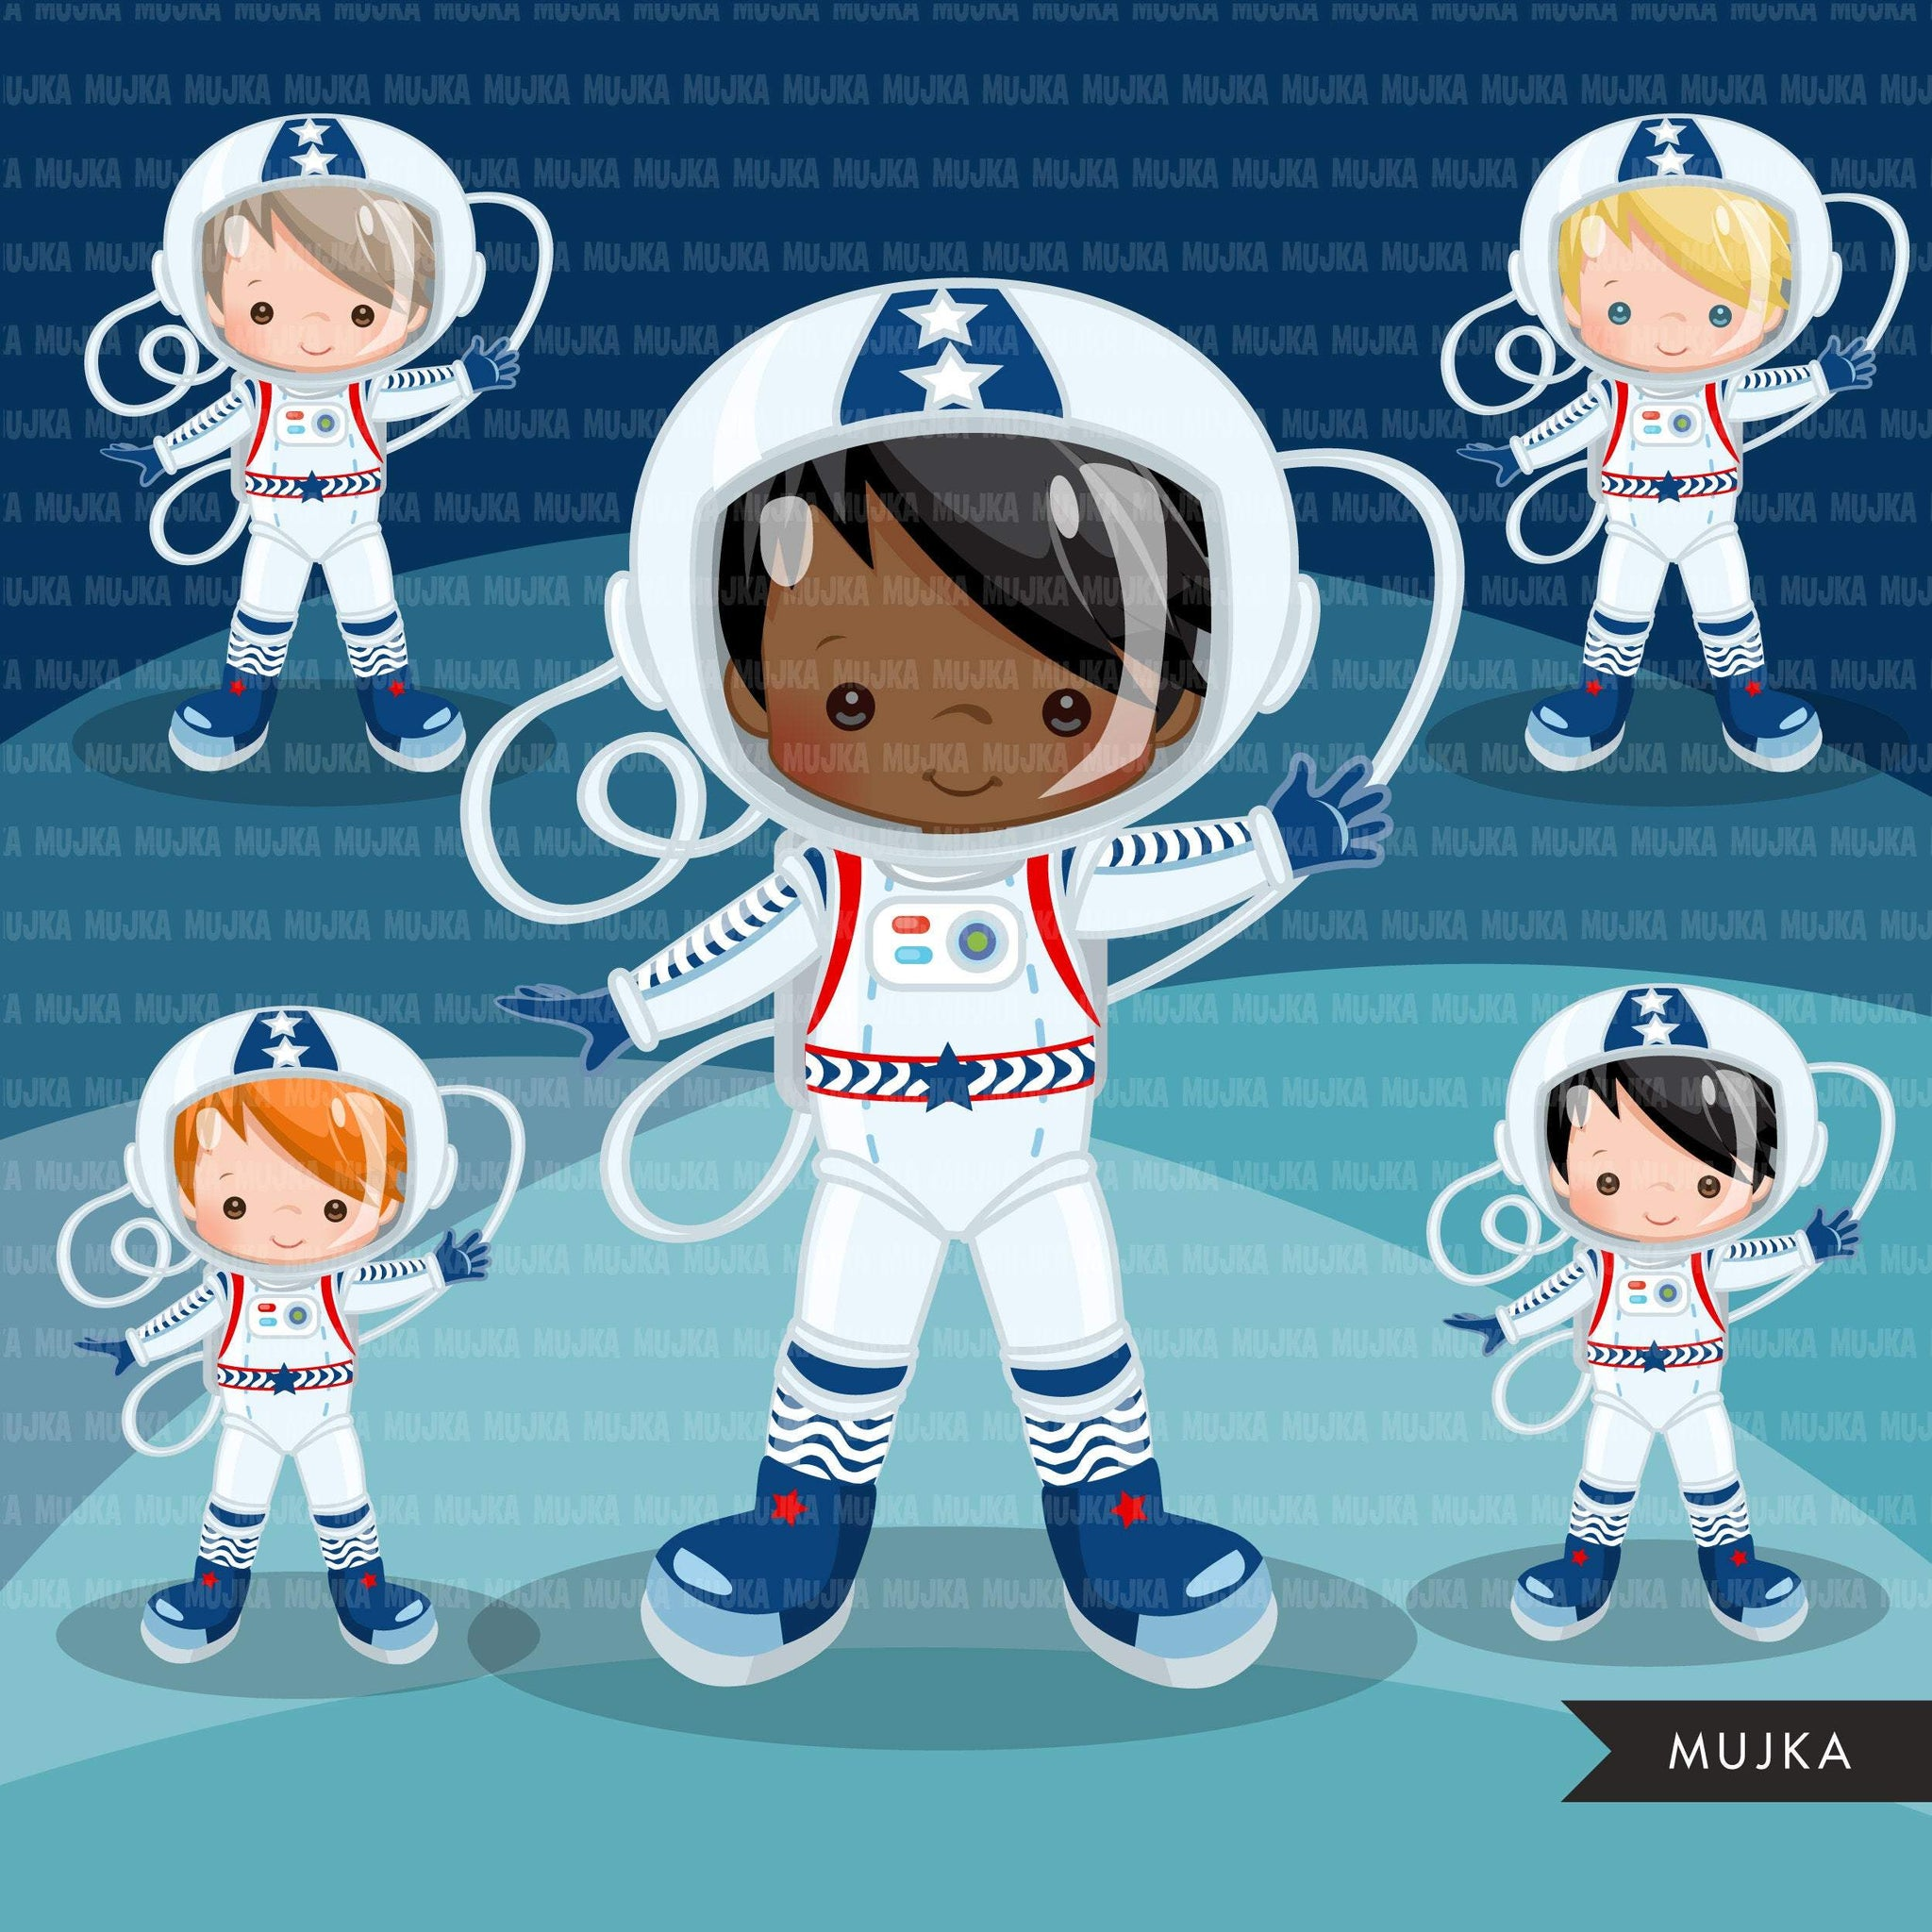 Space solar system clipart with boy and girl astronauts & cute planets